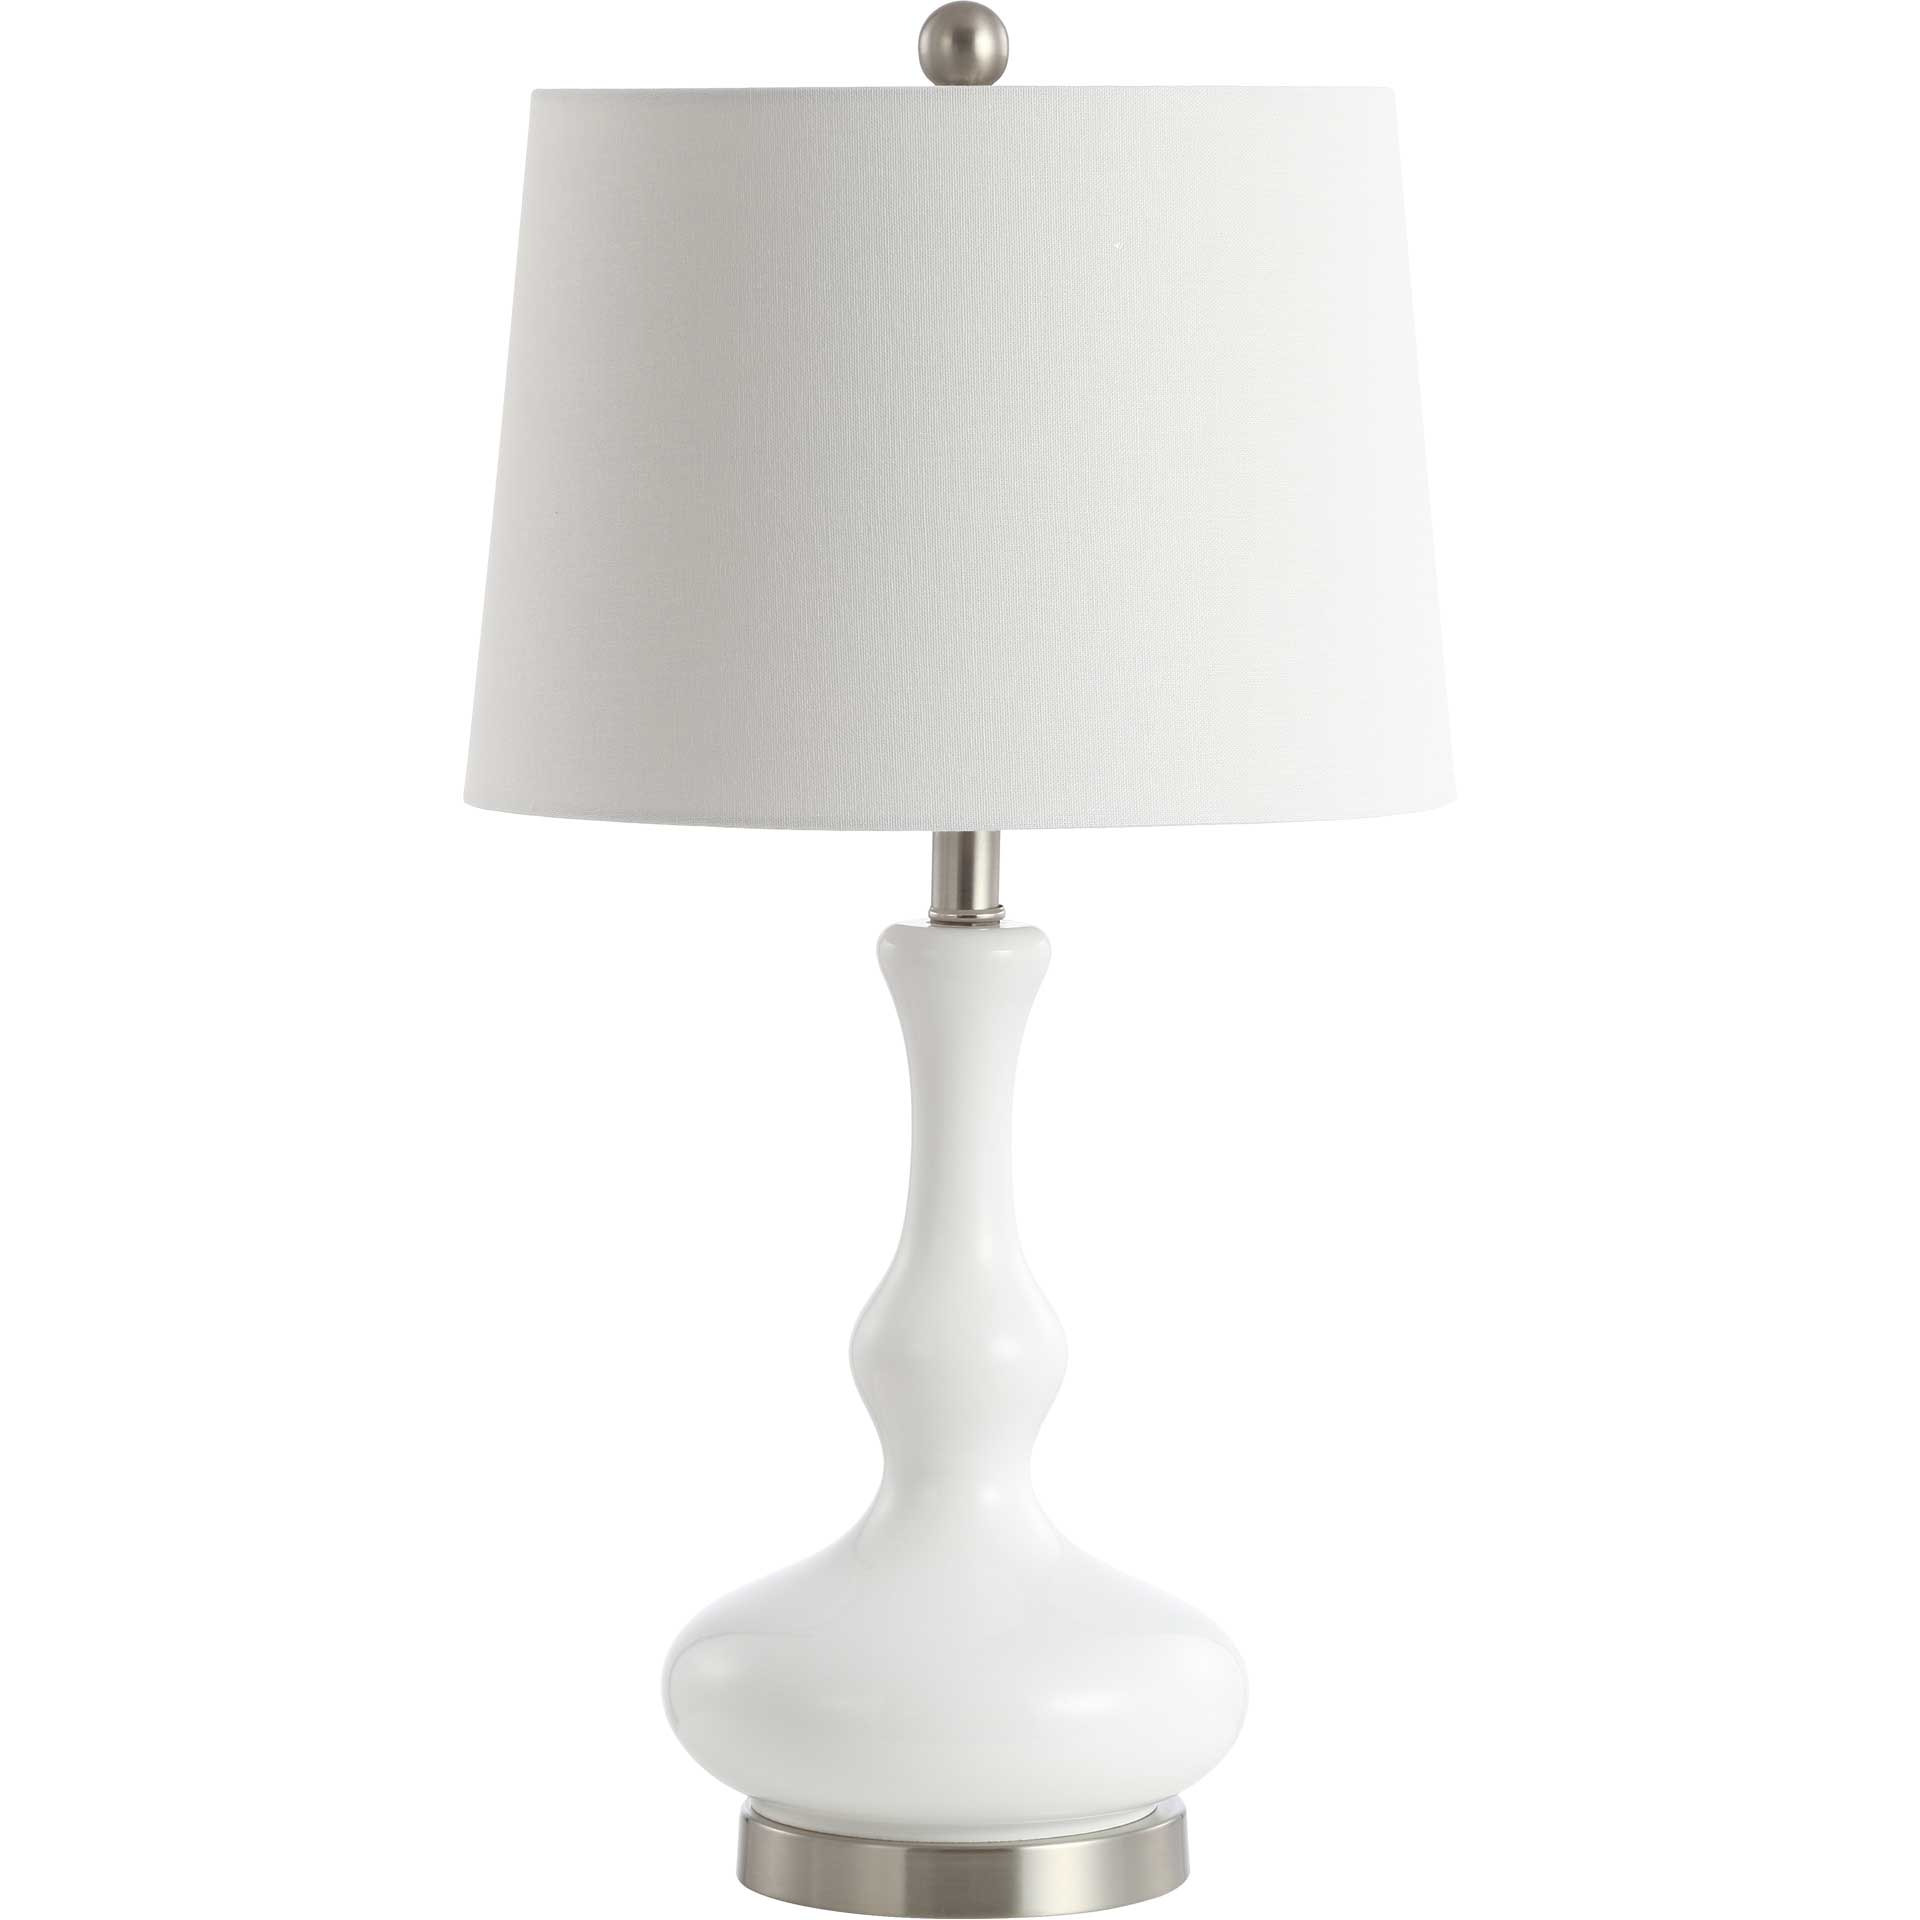 Kellys Table Lamp White/Nickel